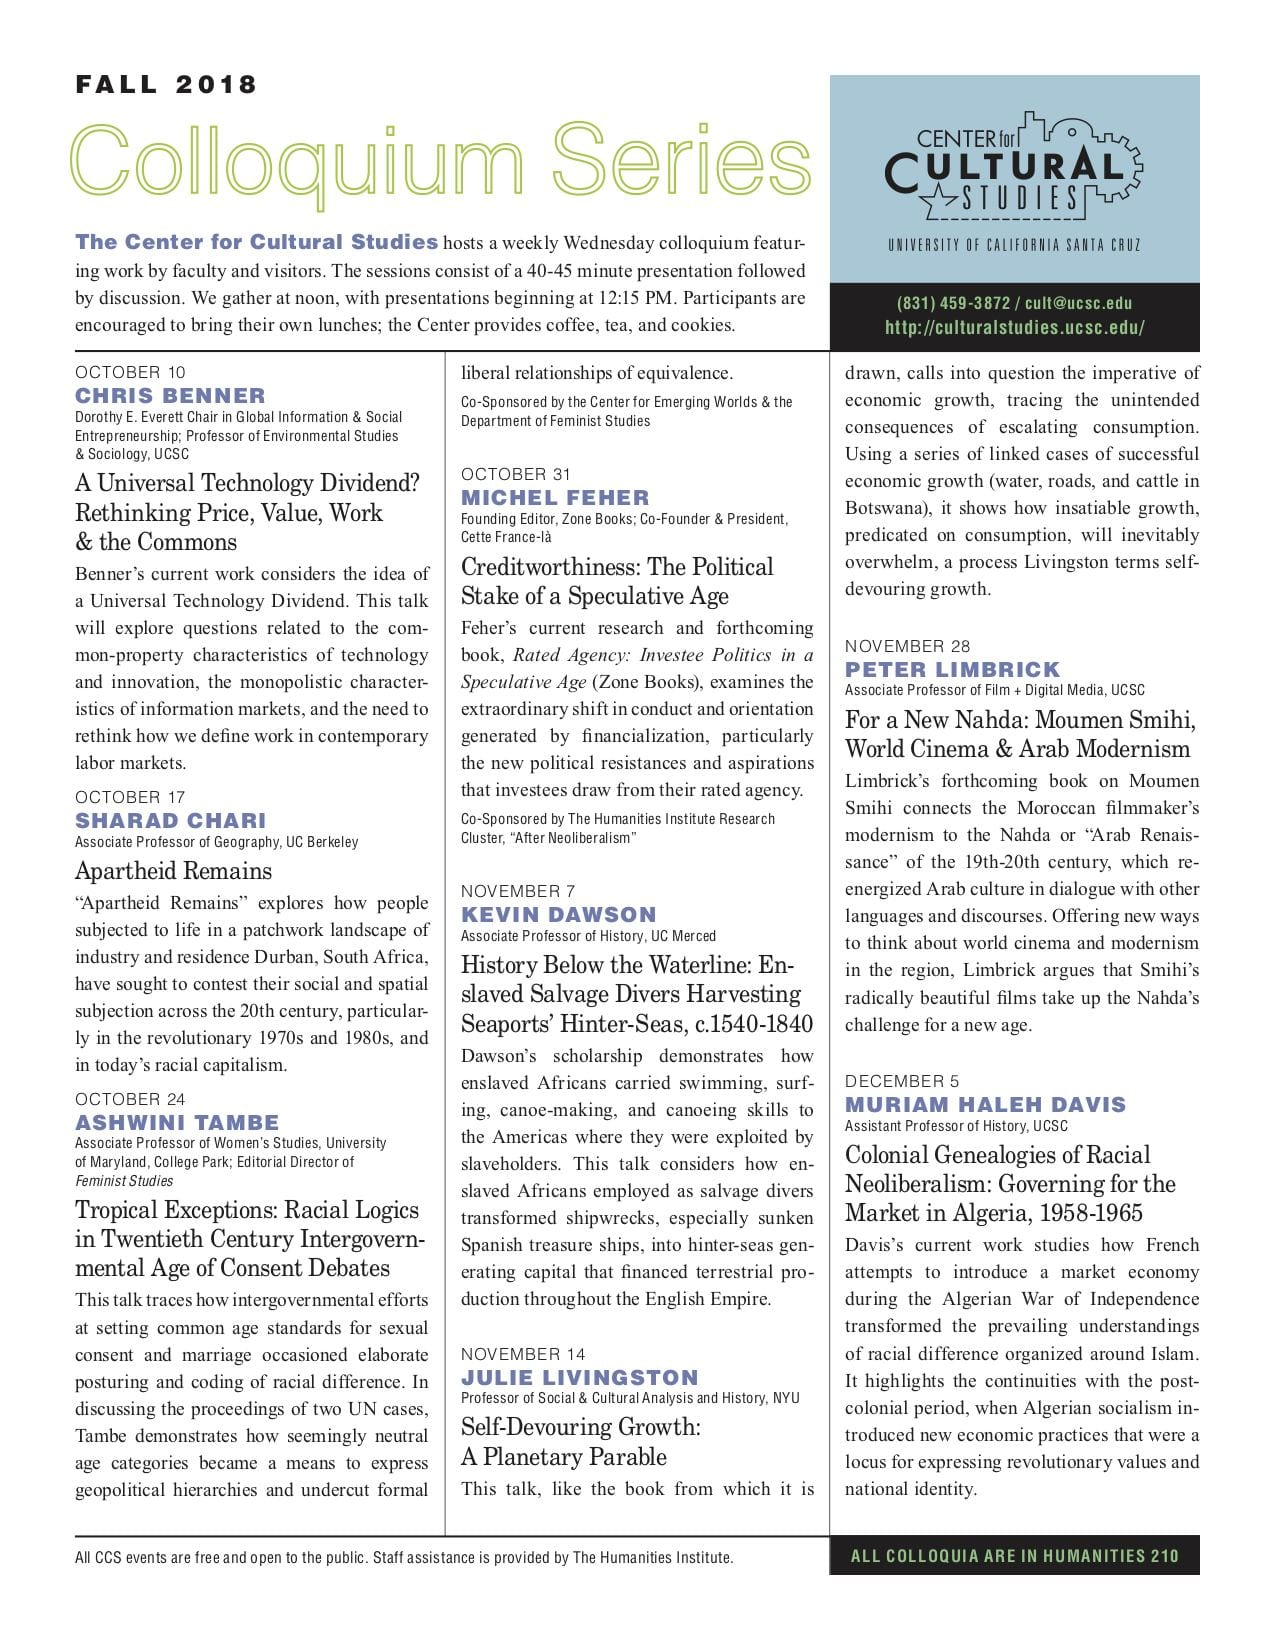 The Center for Cultural Studies' Fall 2018 Newsletter